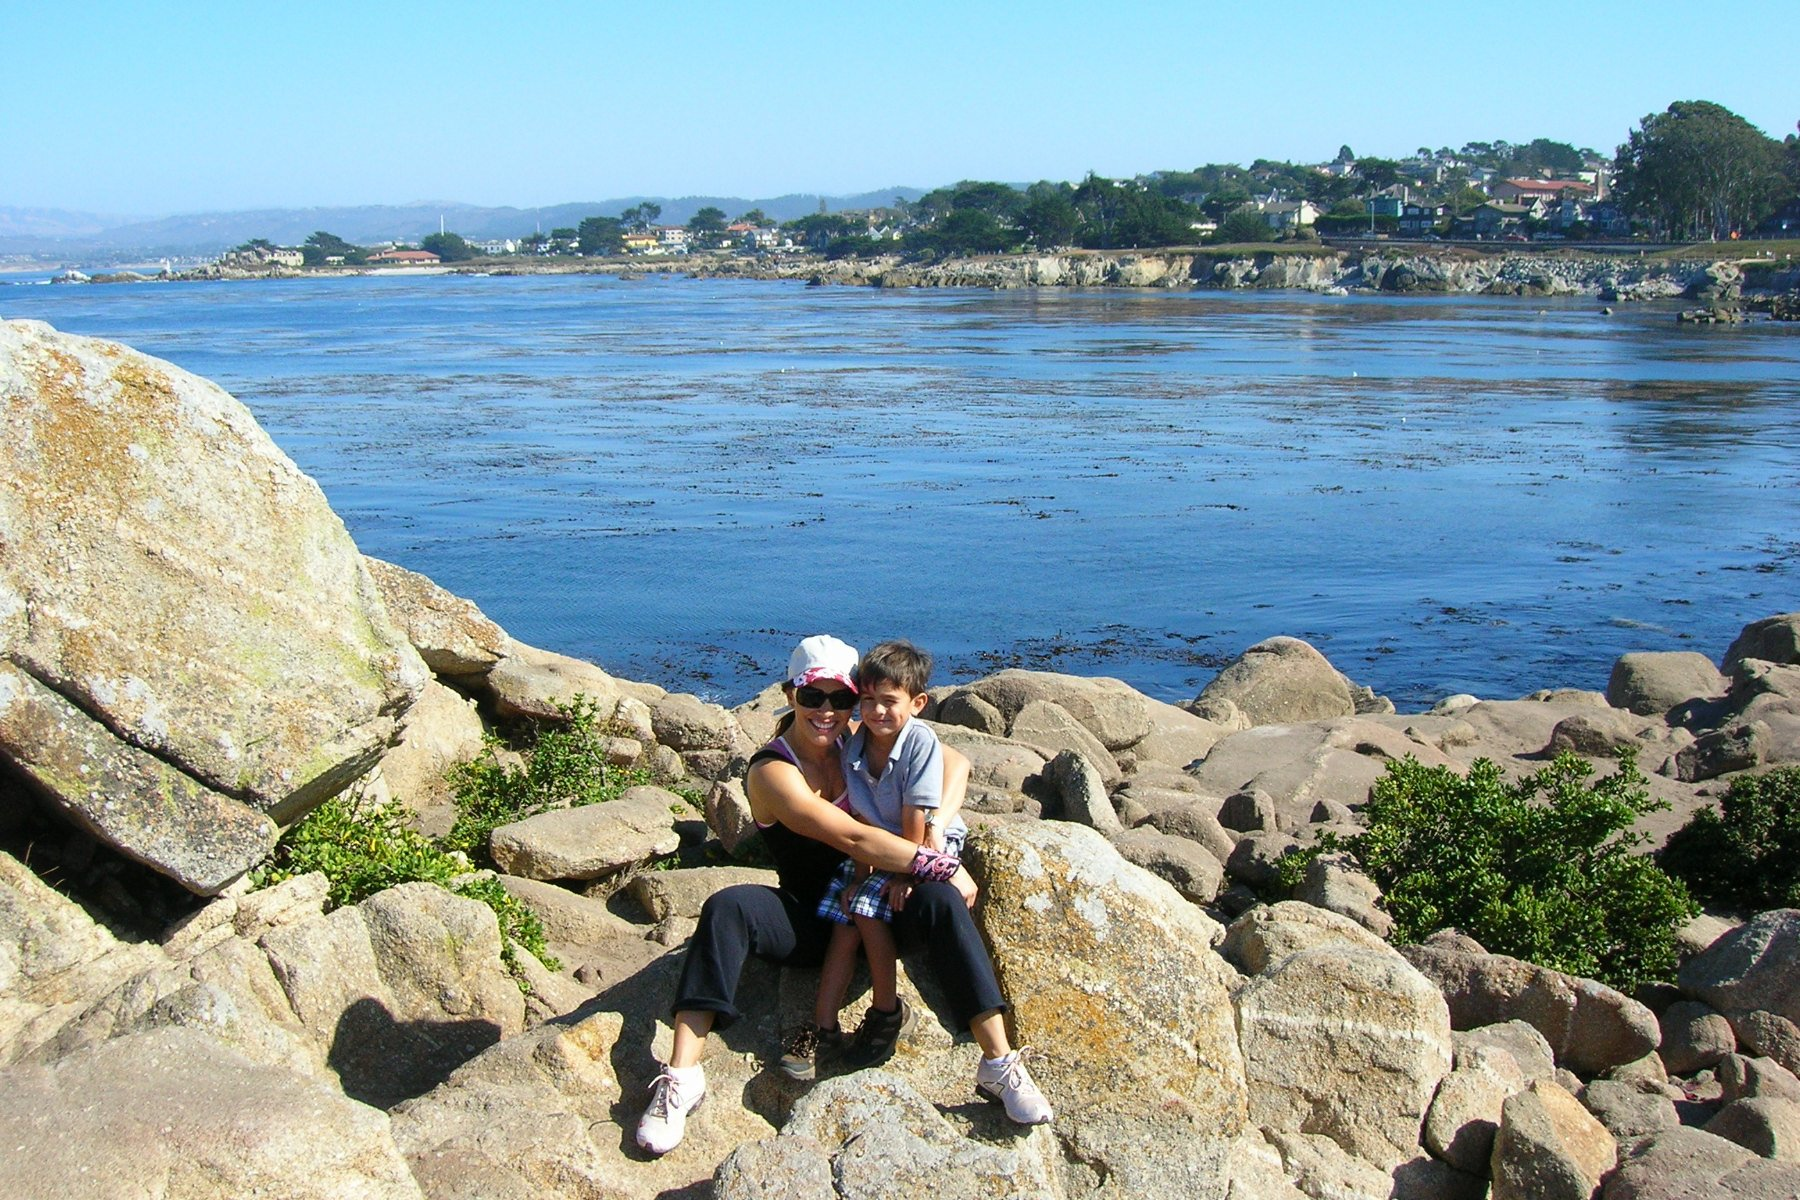 mom-and-ld-at-monterey-sept-2008-1610-24-2011